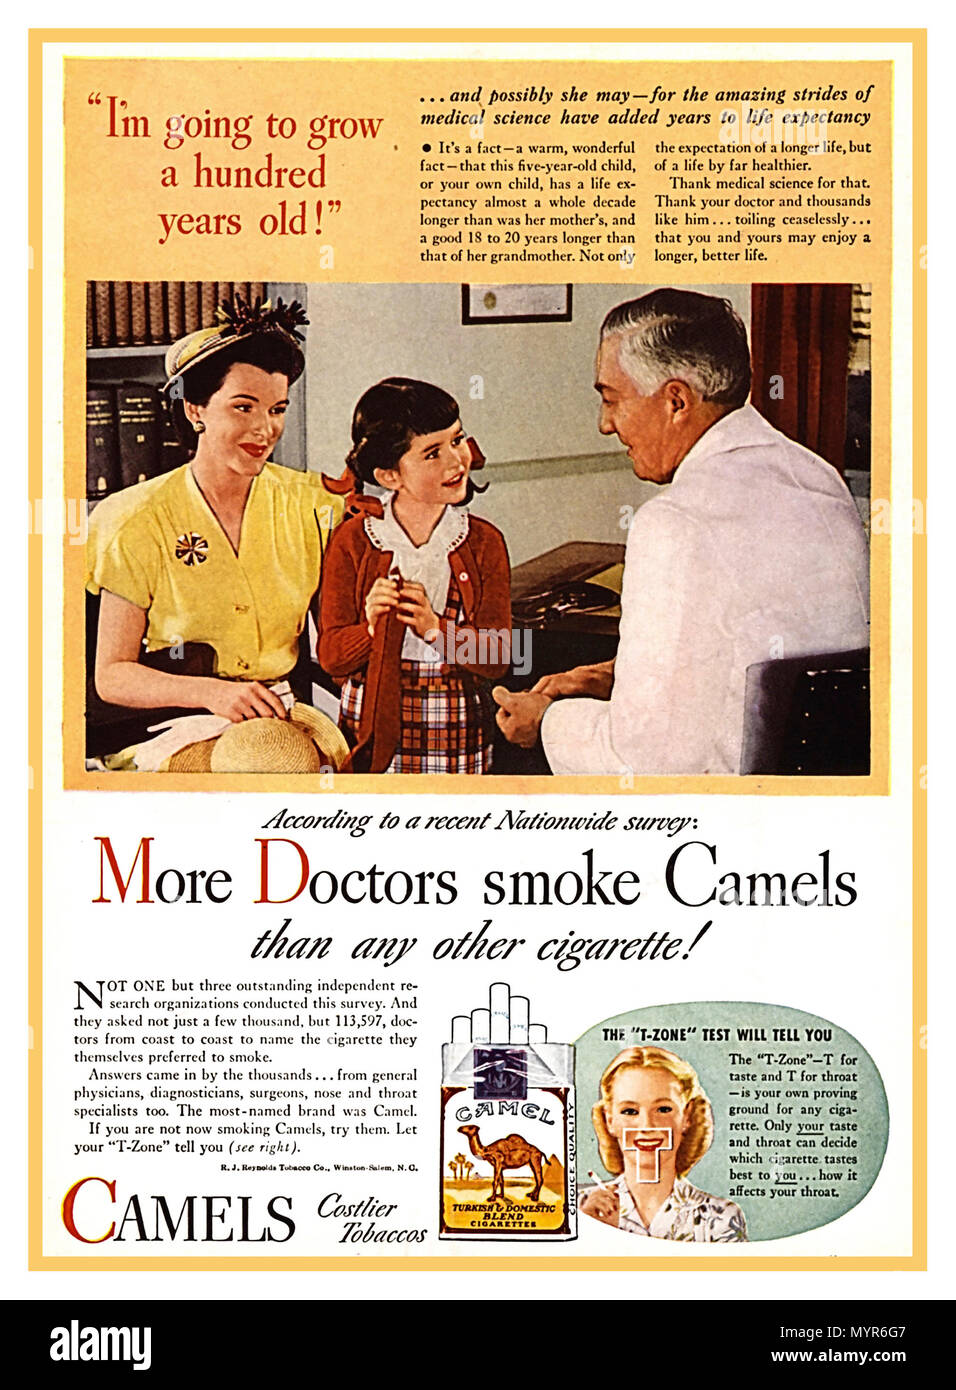 """1940's Vintage Smoking Press Poster Advertisement In 1946, the RJ Reynolds Tobacco Company launched a major new advertising campaign for Camels. Working to establish dominance in a highly competitive market, Reynolds centred its new campaign on the tag line, """"More doctors smoke Camels than any other cigarette"""" On the basis of more than 7,000 articles relating to smoking and disease available at that time in biomedical literature, the Advisory Committee concluded that cigarette smoking was a cause of lung cancer With this, the words 'Smoking Kills' were then branded into public consciousness. - Stock Image"""